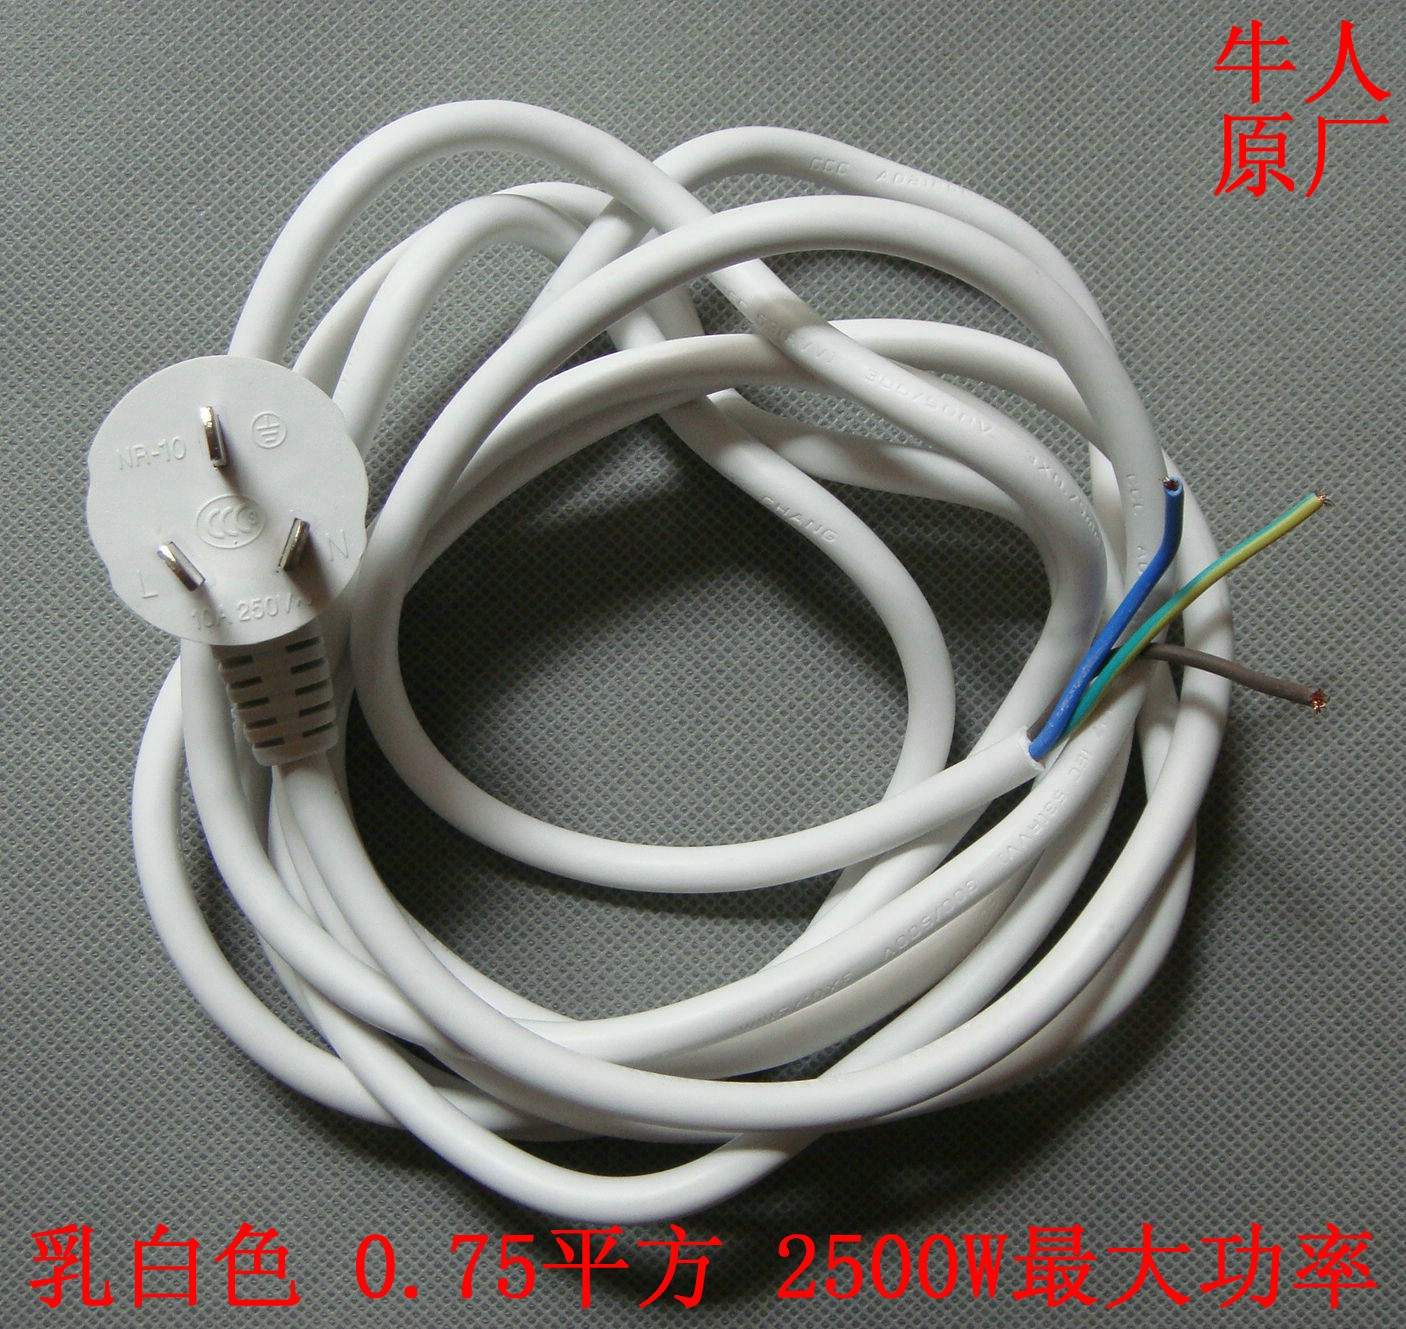 Nihon original white black wire 1 8 3 5 10 meters with three-pin ...